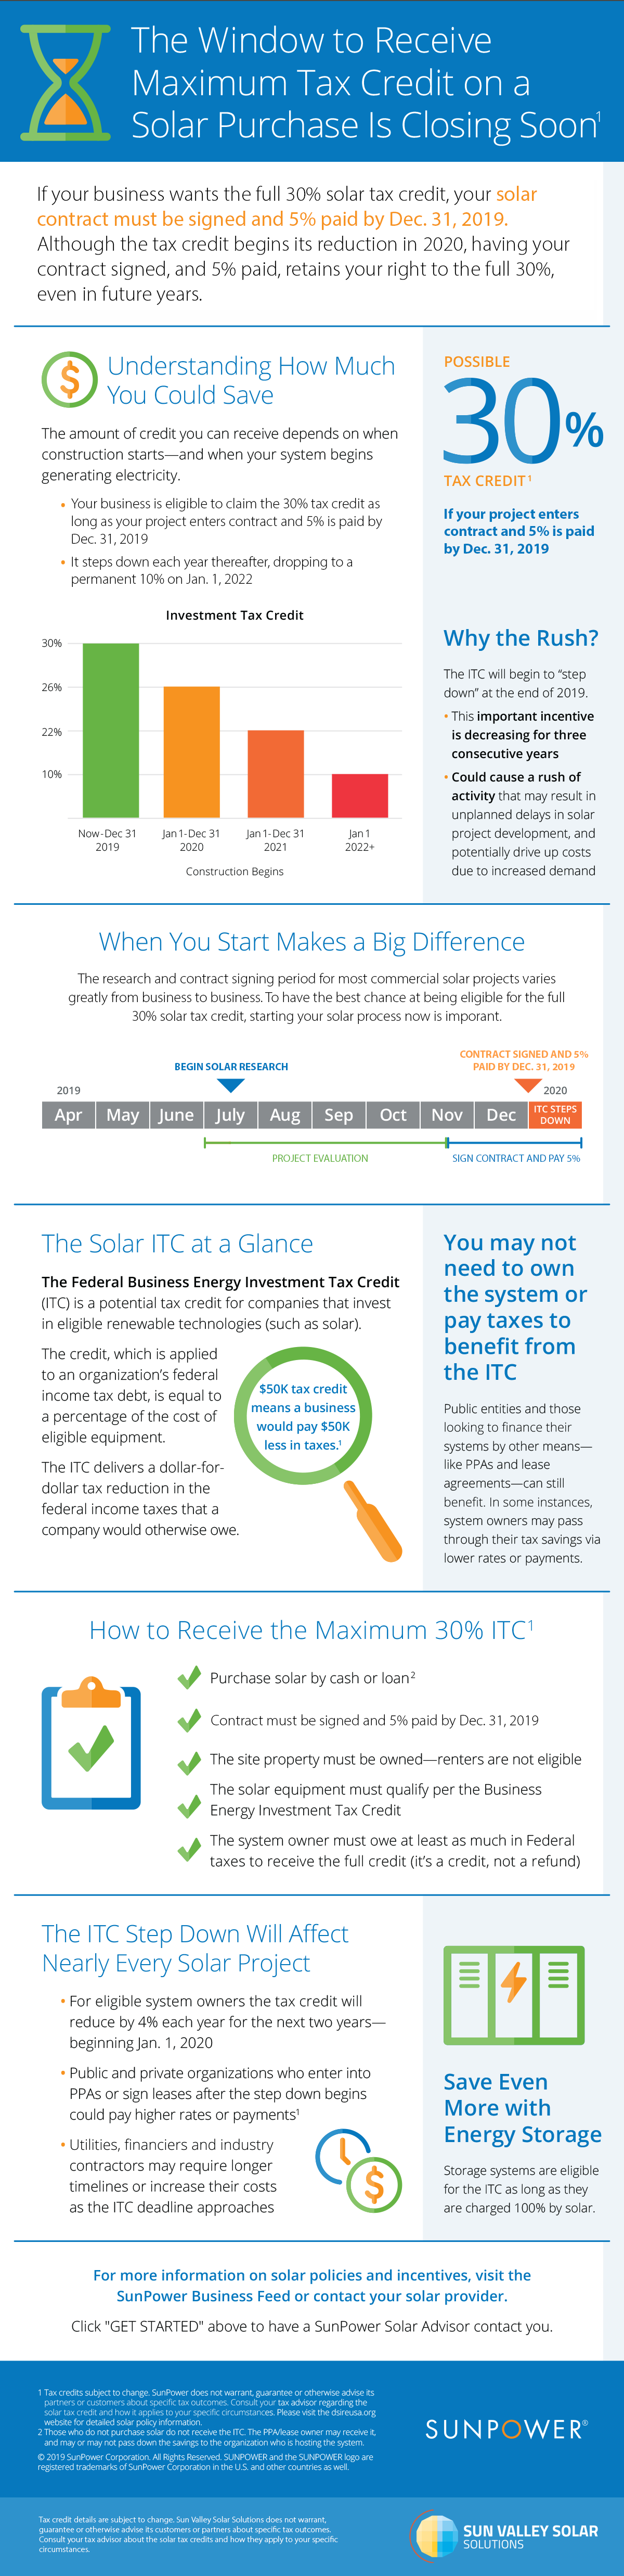 Tax Credit Infographic